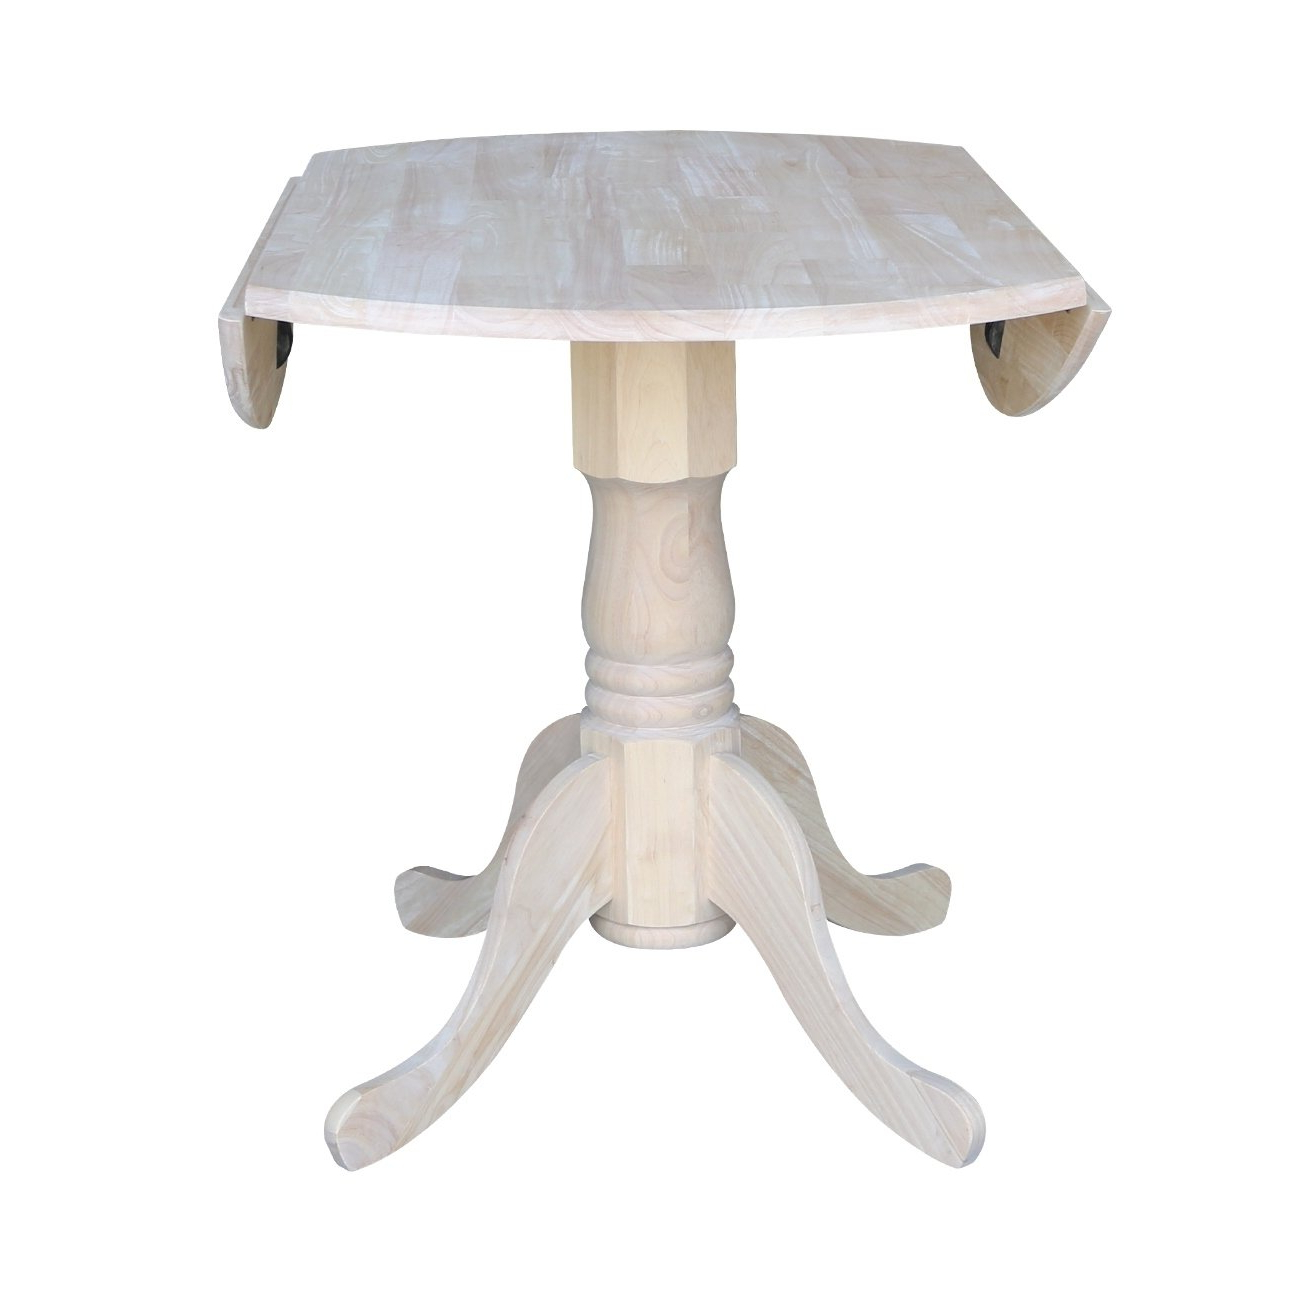 Alamo Transitional 4 Seating Double Drop Leaf Round Casual Dining Tables Within Famous Amazon – Transitional Casual Round 36 Inch Dual Drop (View 6 of 19)